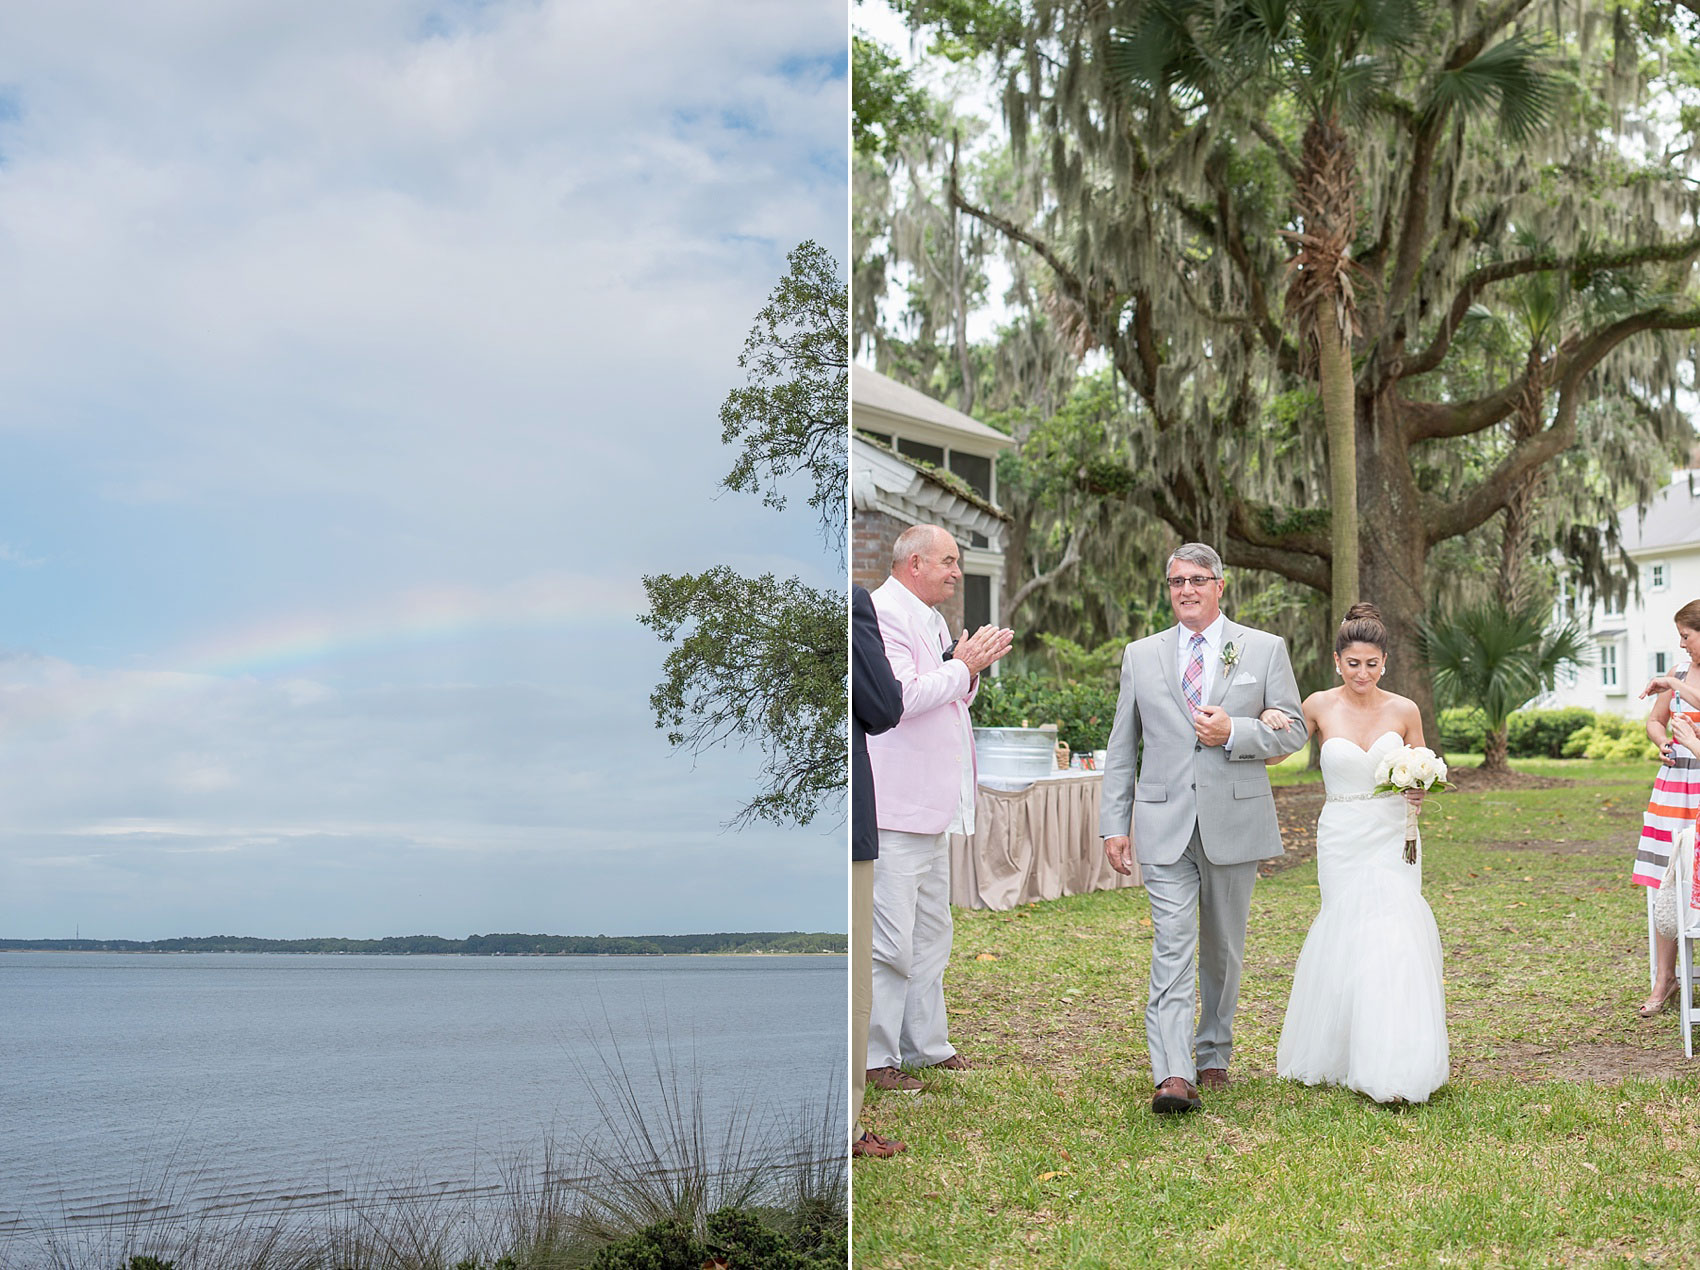 Wedding ceremony amidst Spanish Moss for a Haig Point wedding in South Carolina, off the coast of Hilton Head. A rainbow appeared just before the ceremony! Photos by Mikkel Paige Photography.